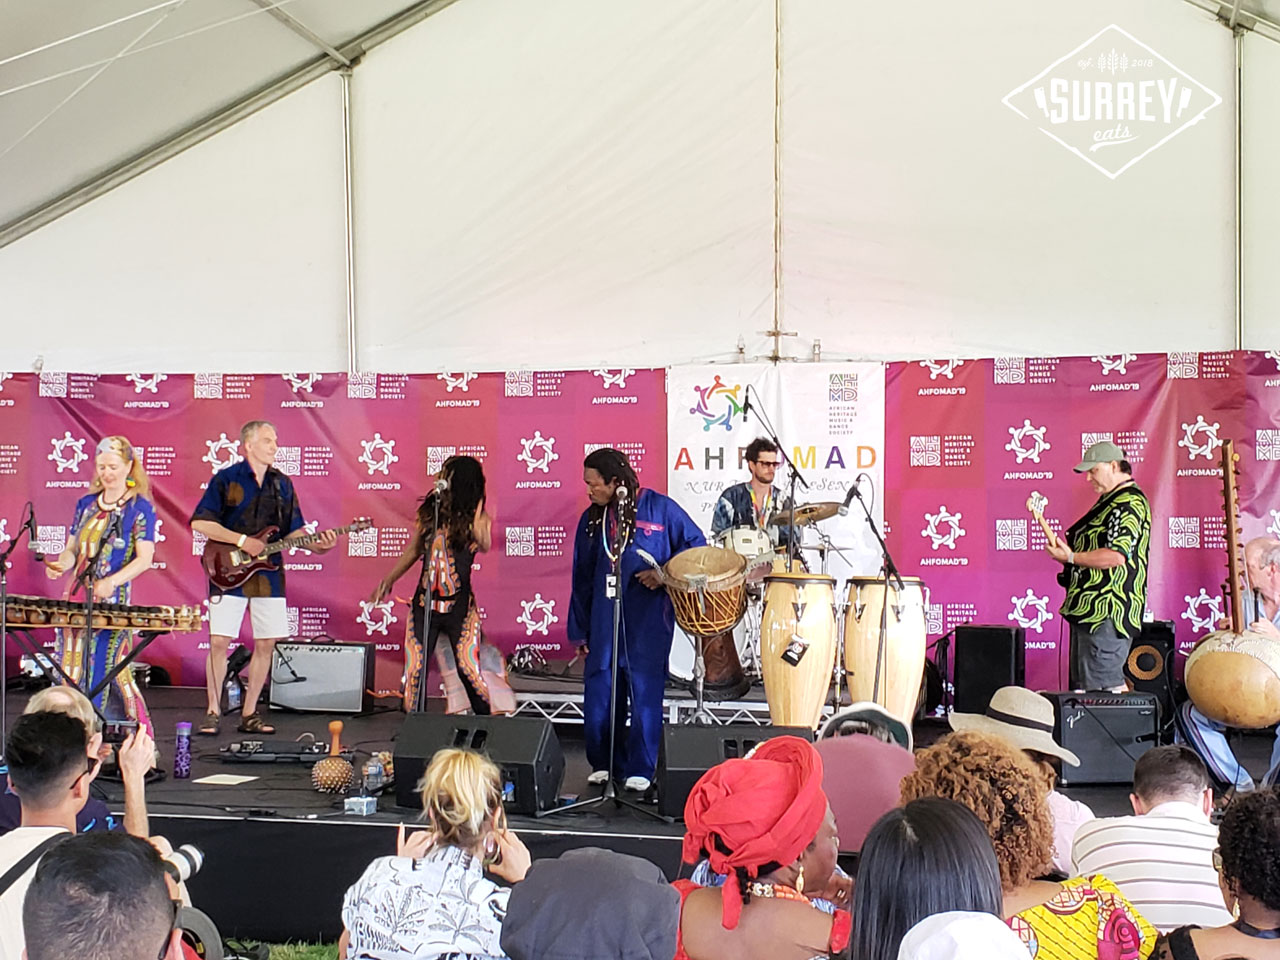 An African musical troupe performing at Surrey's Fusion Festival 2019